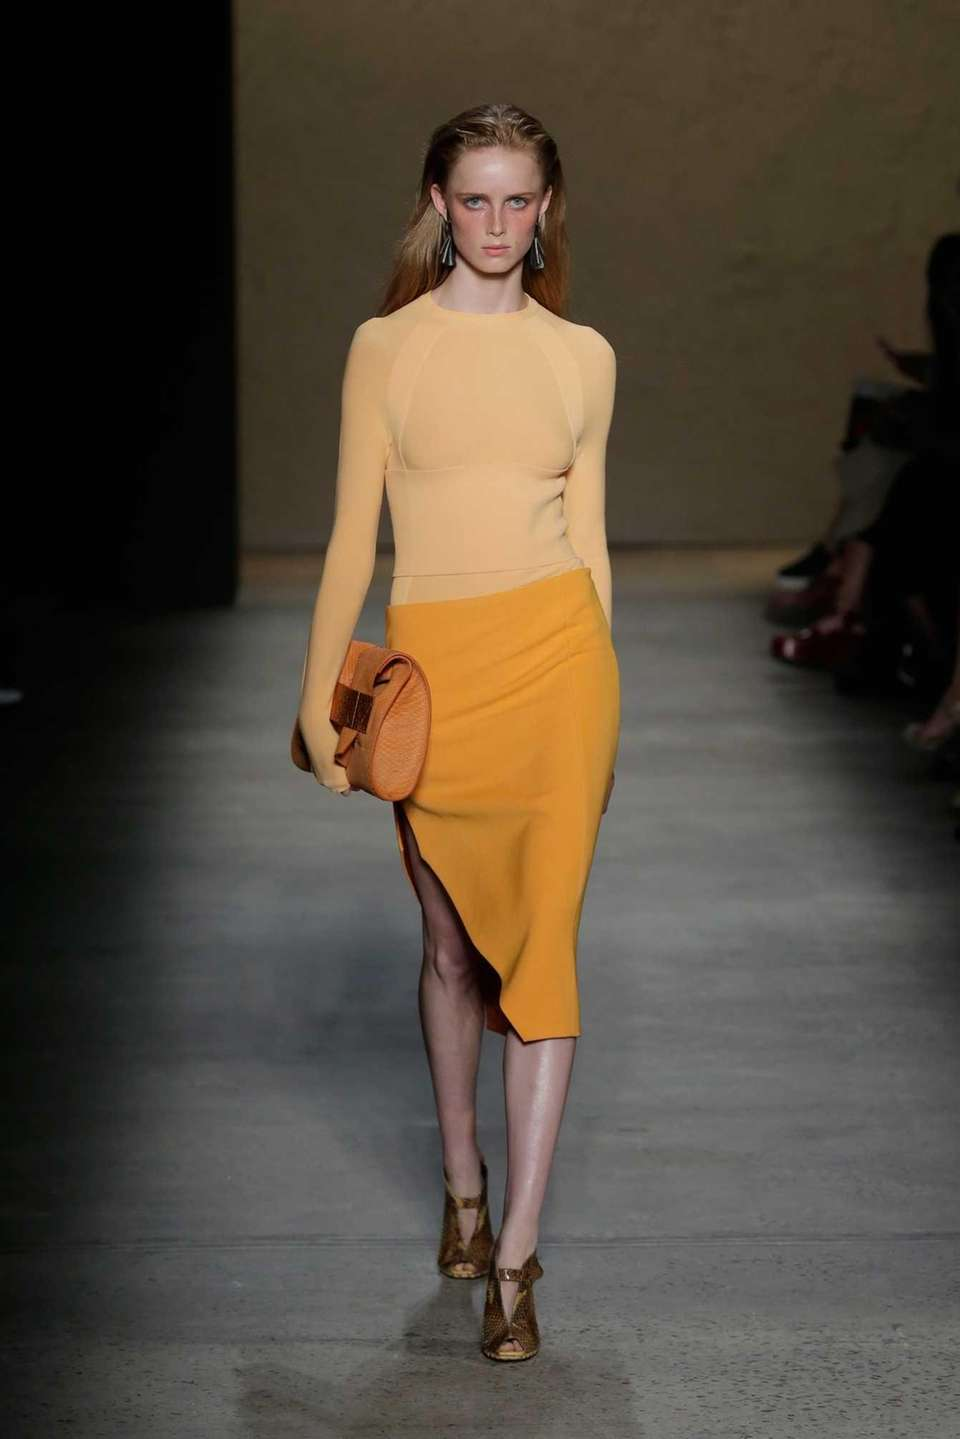 Narciso Rodriguez certainly knows his way around a